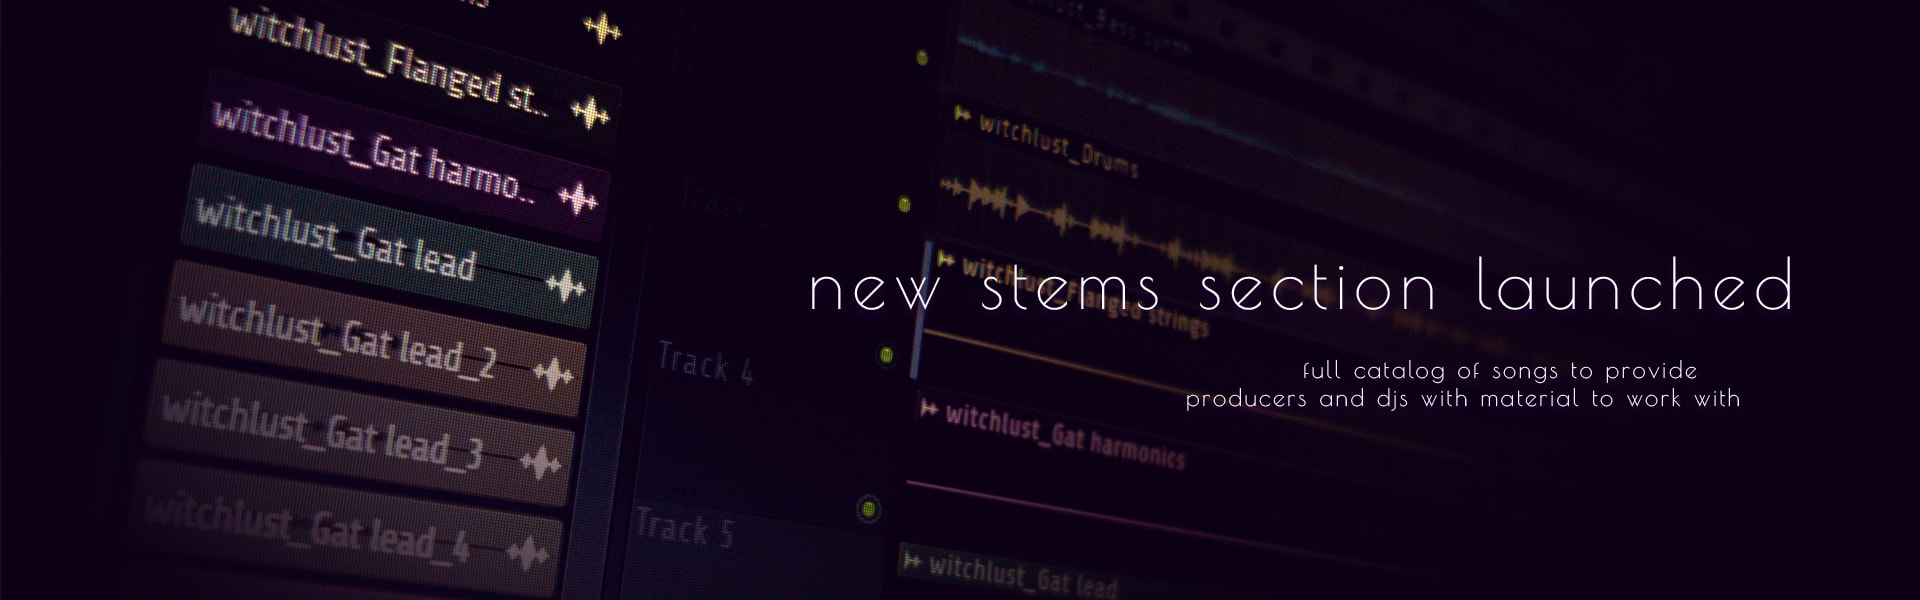 New 'stems' section launched